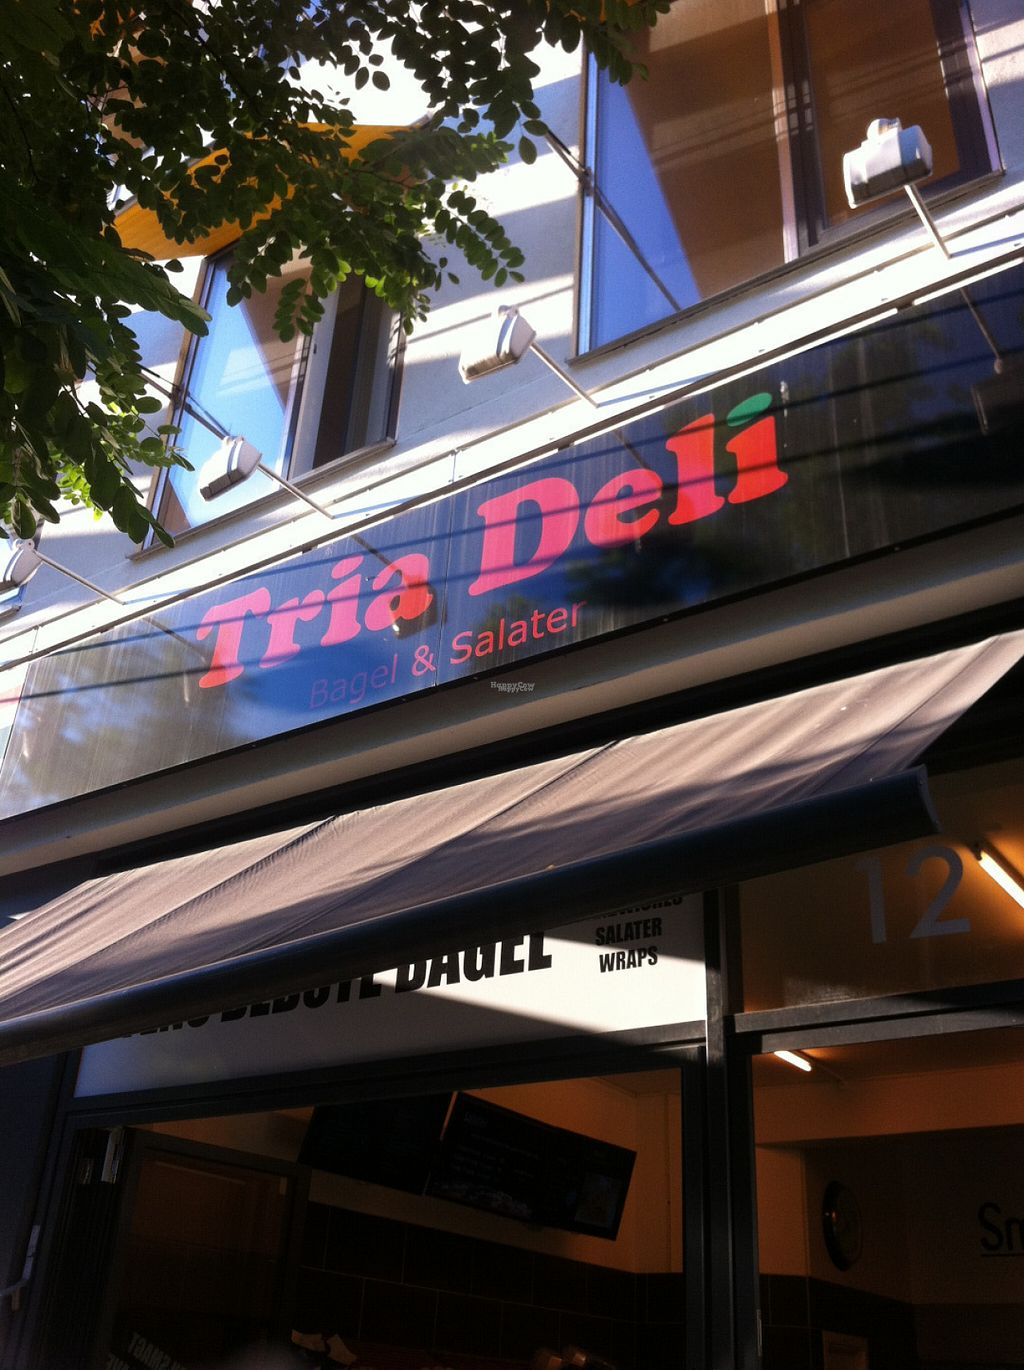 """Photo of CLOSED: Tria Deli  by <a href=""""/members/profile/piffelina"""">piffelina</a> <br/>Cafe hidden behind a tree, a little hard to see <br/> August 3, 2016  - <a href='/contact/abuse/image/51837/164802'>Report</a>"""